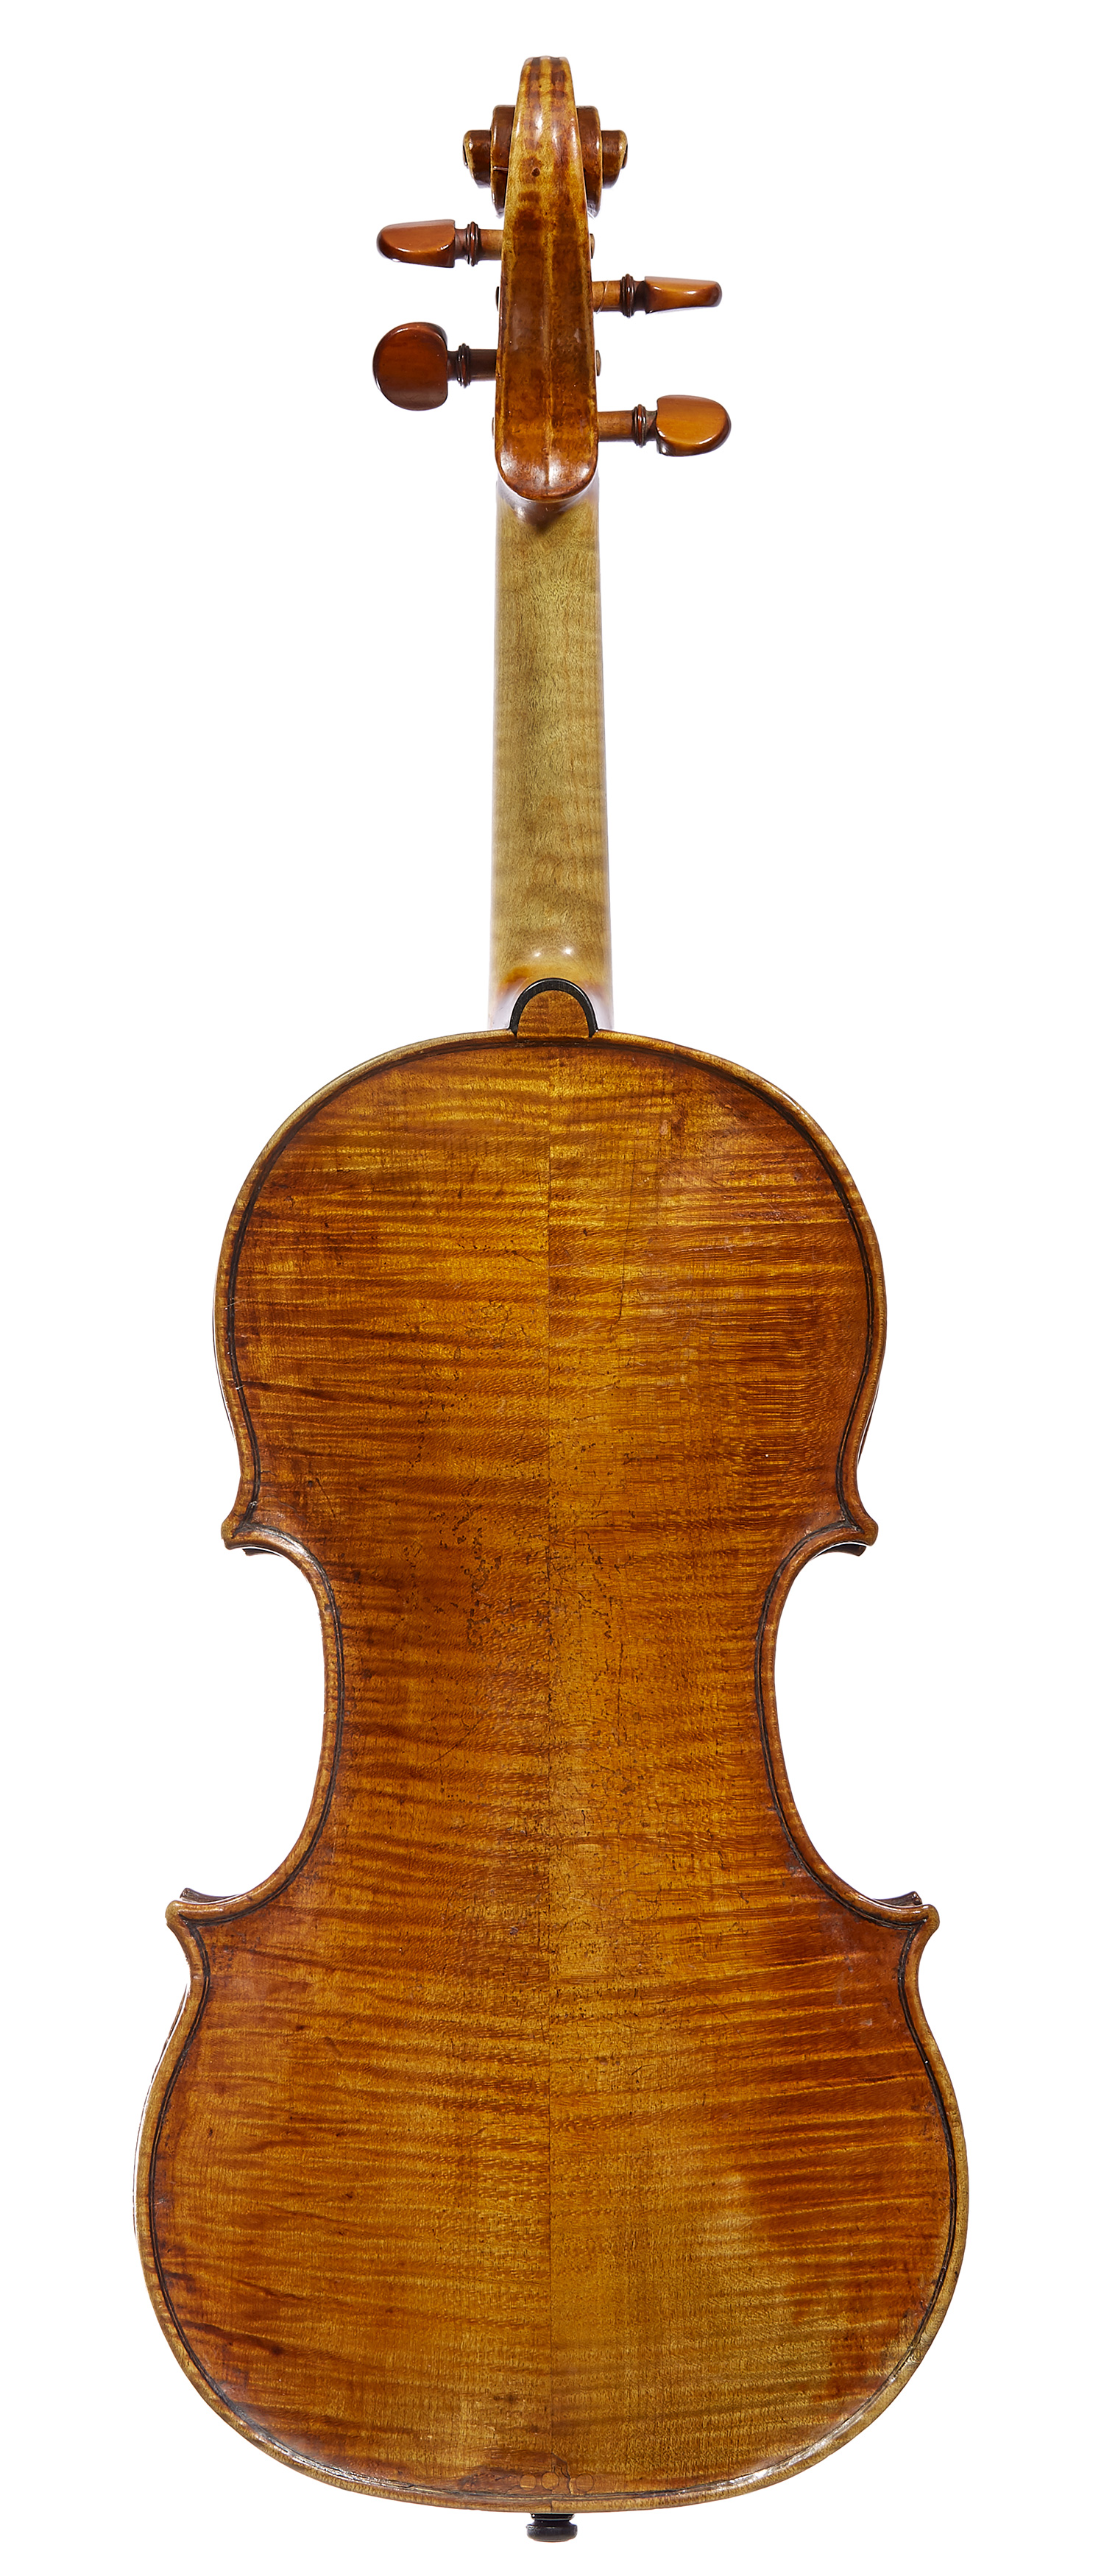 Guarneri back